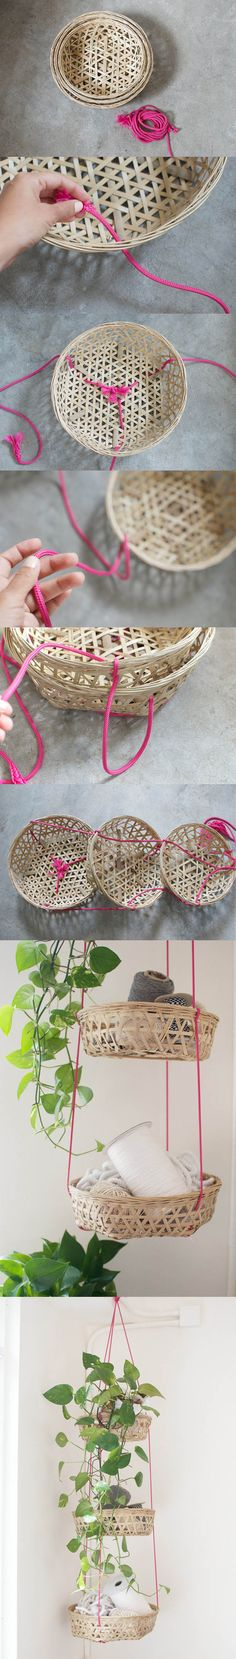 DIY hanging baskets.. Another fun idea for organising craft supplies and using less desk/counter space.